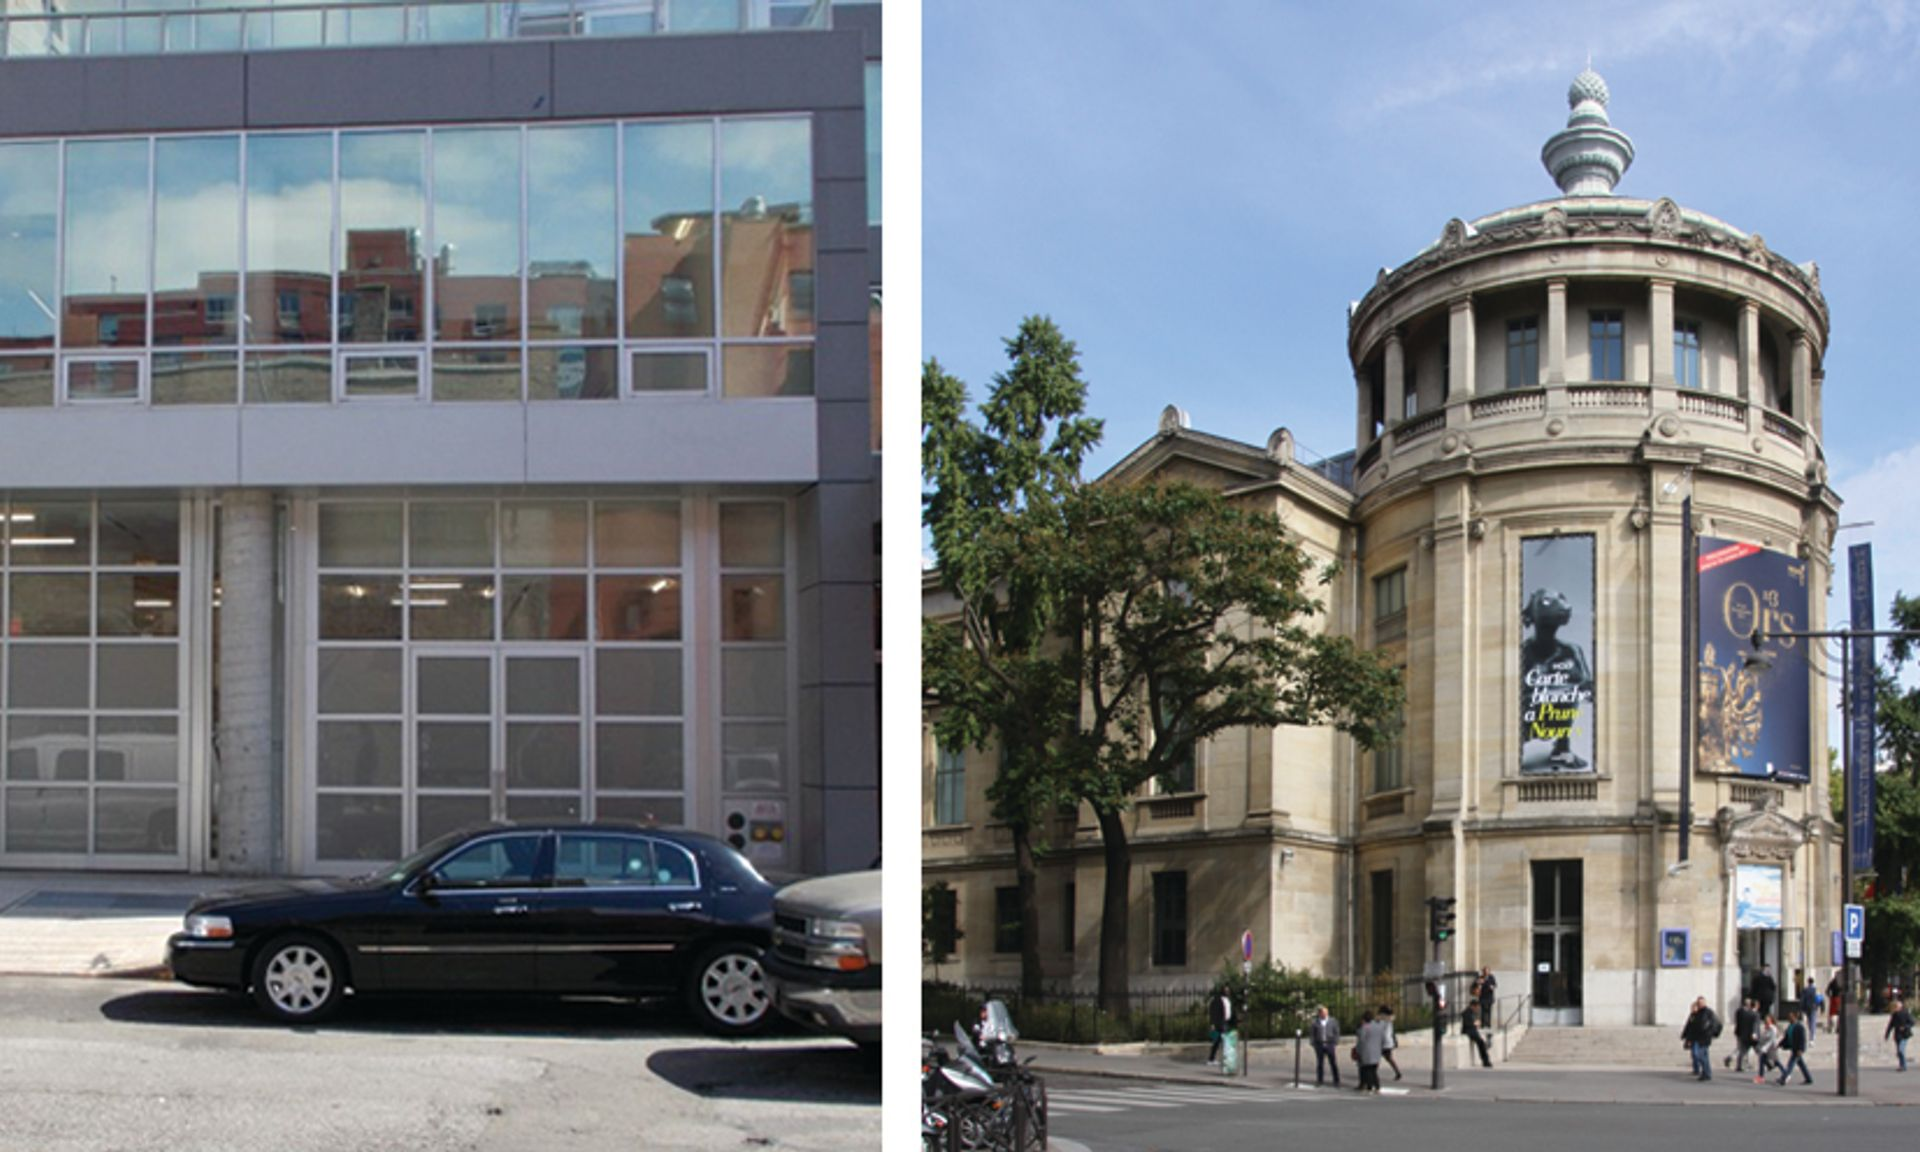 New-York gallery Marlborough and a retired curator from the Guimet Museum in Paris face bribery charges